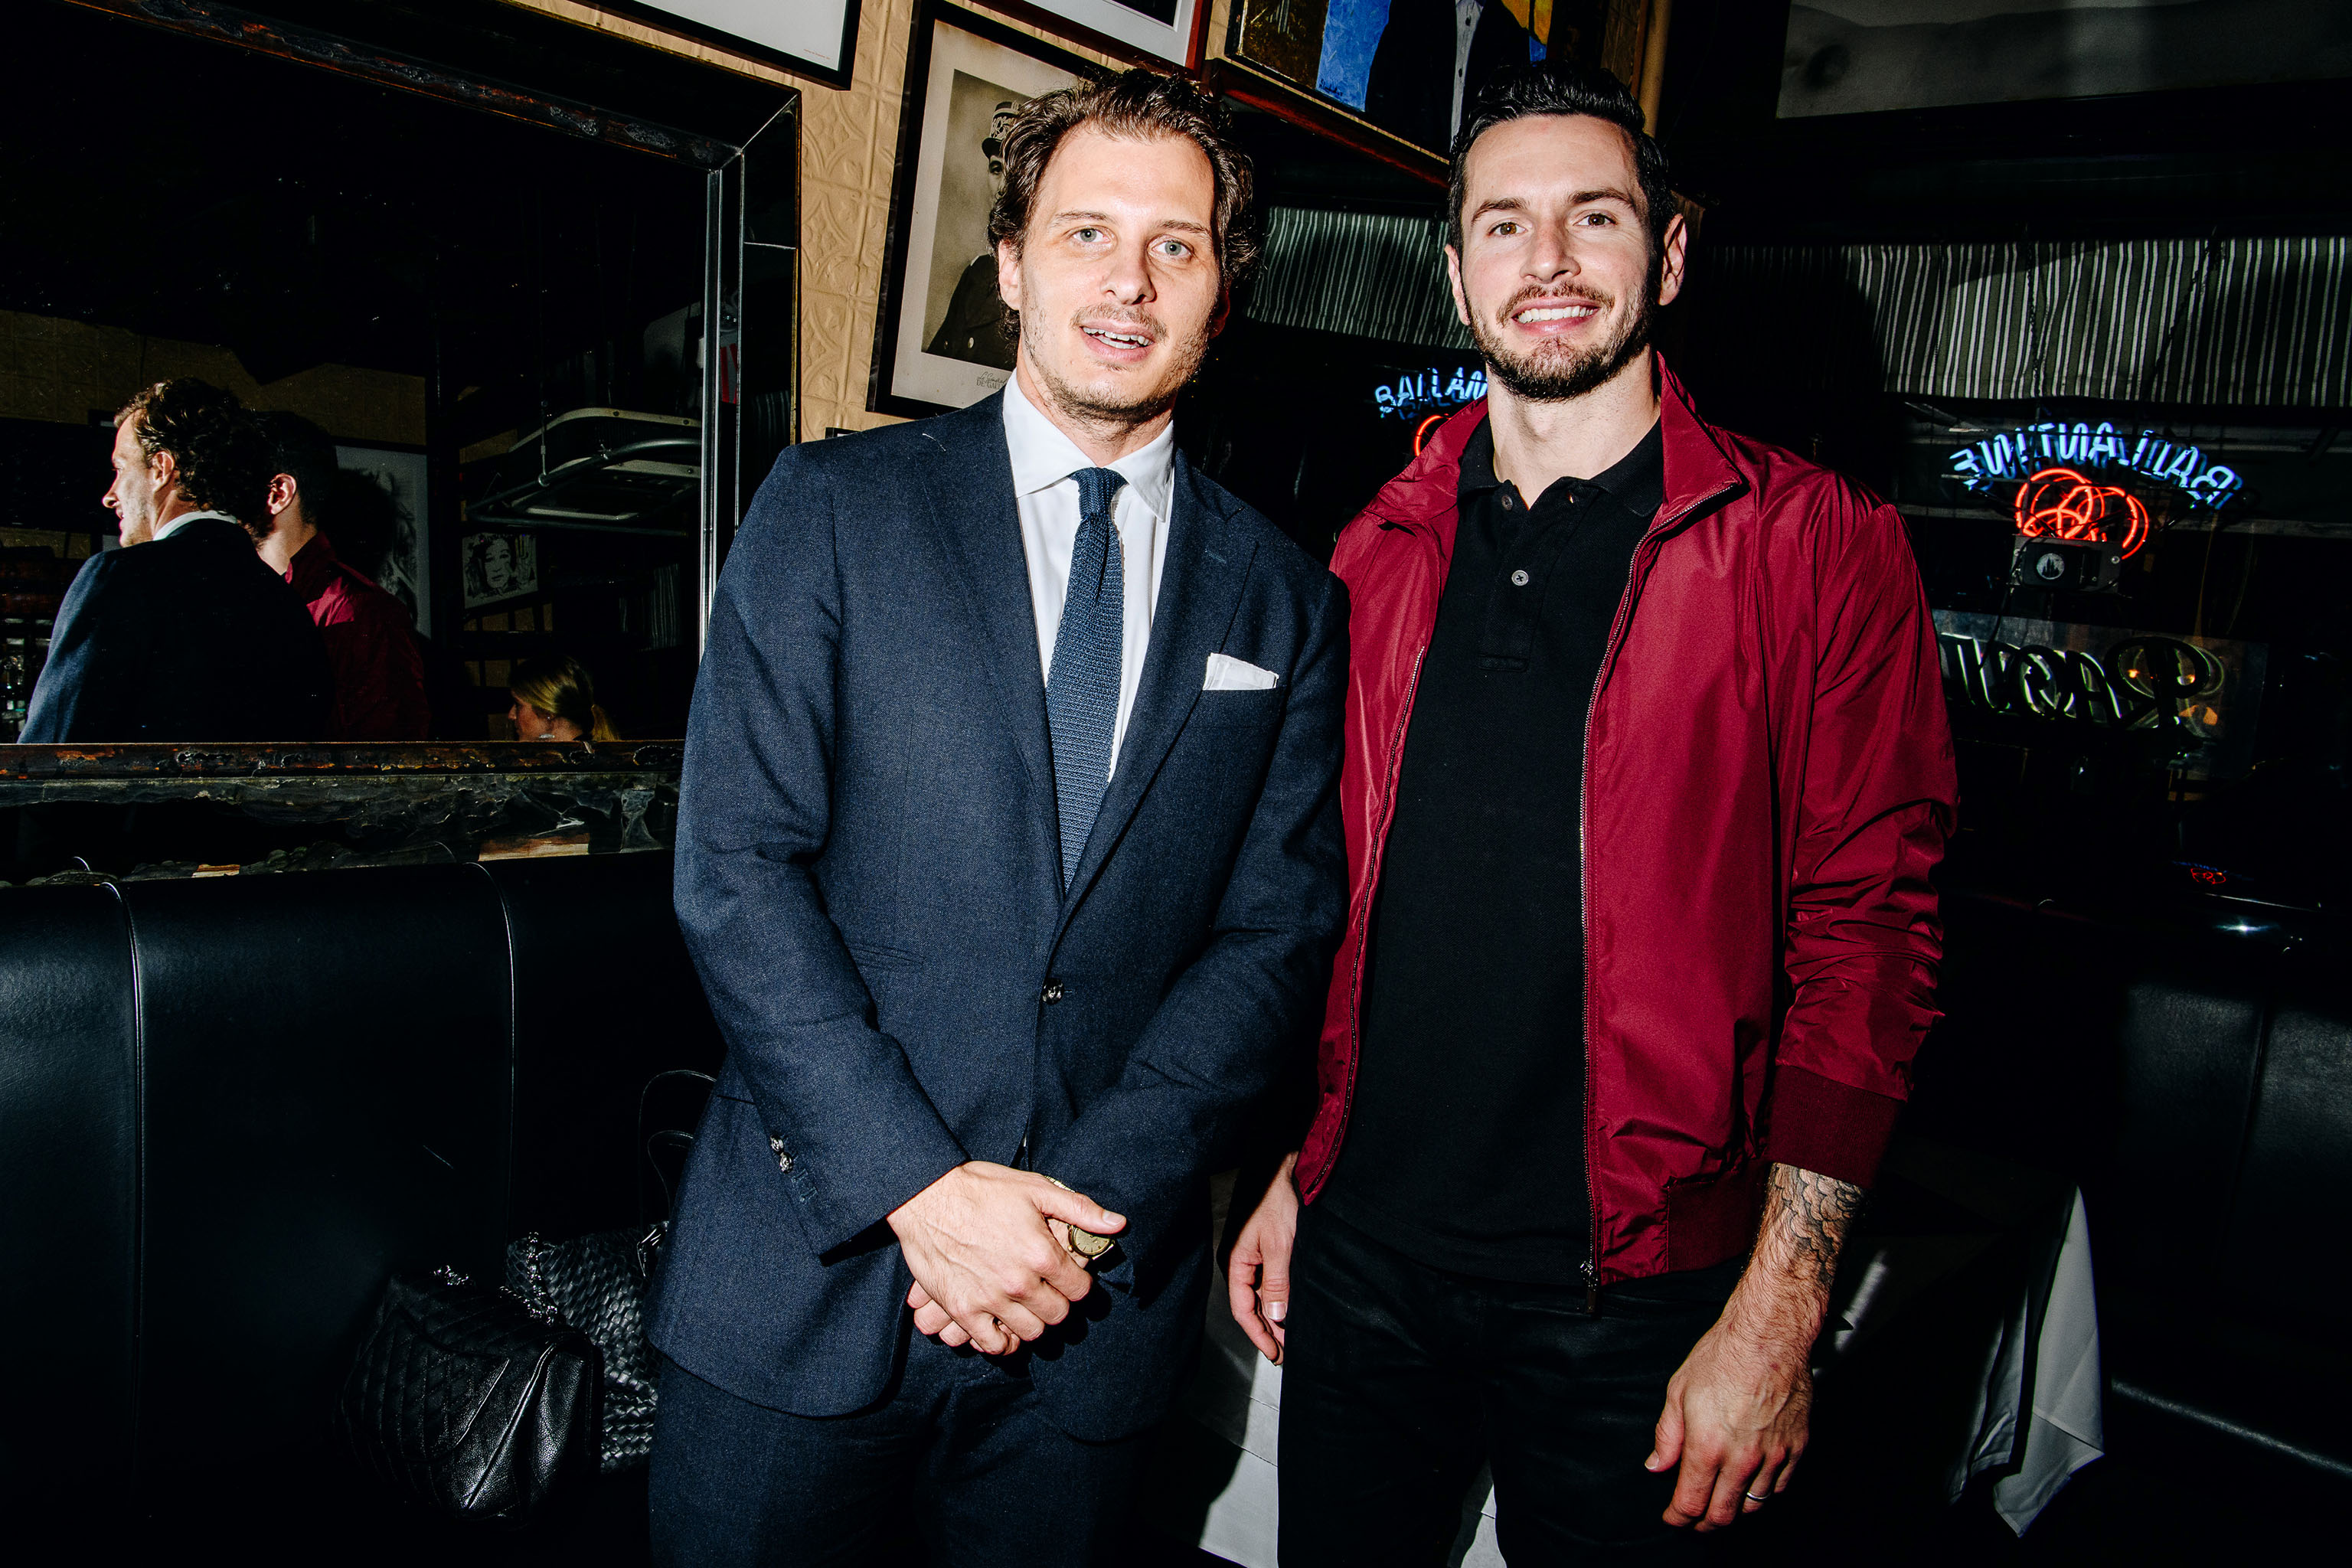 Chris Wallace and JJ Redick